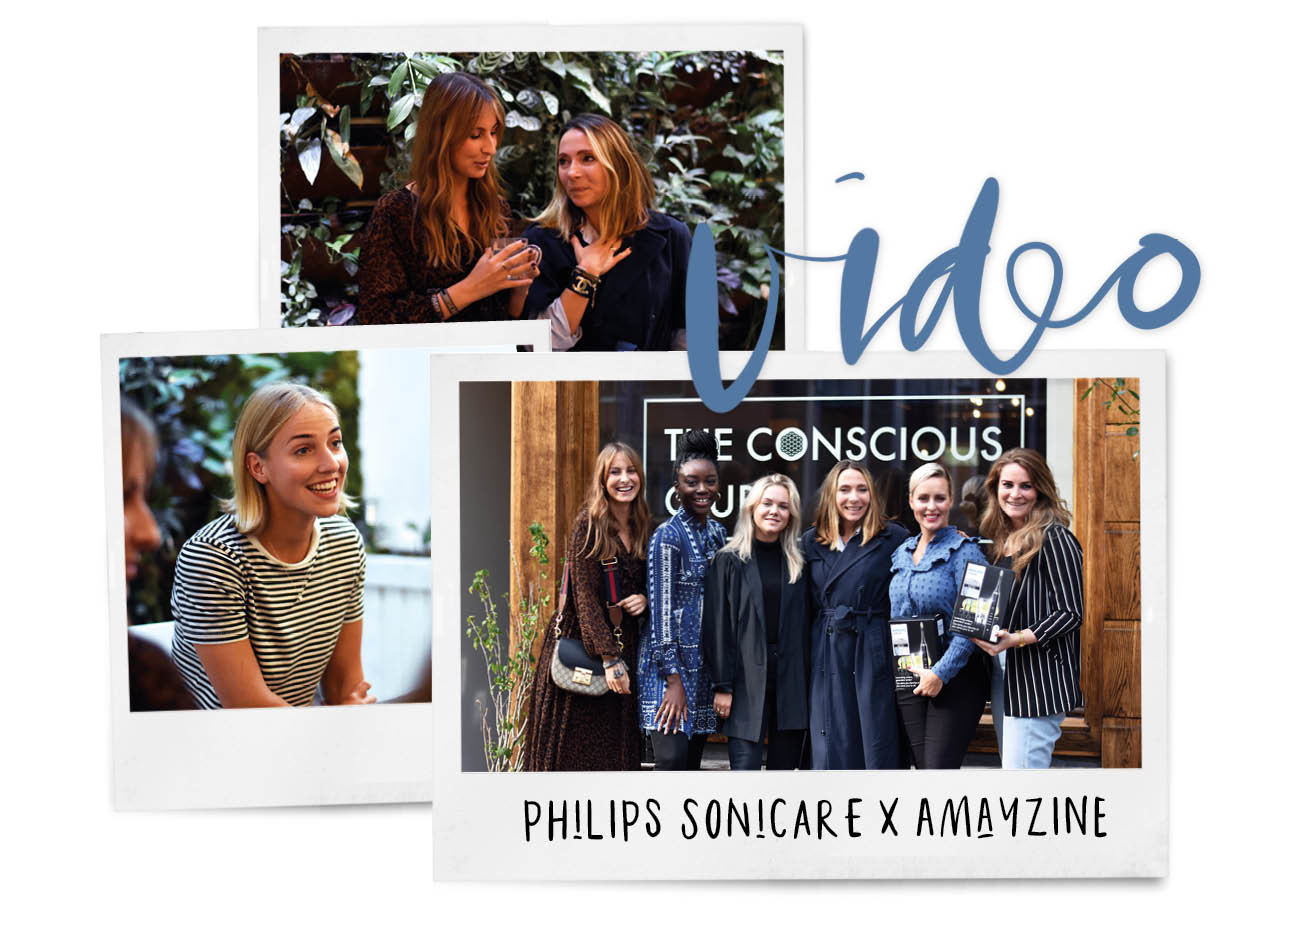 philips sonicare x amayzine en dear good morning bij the conscious club